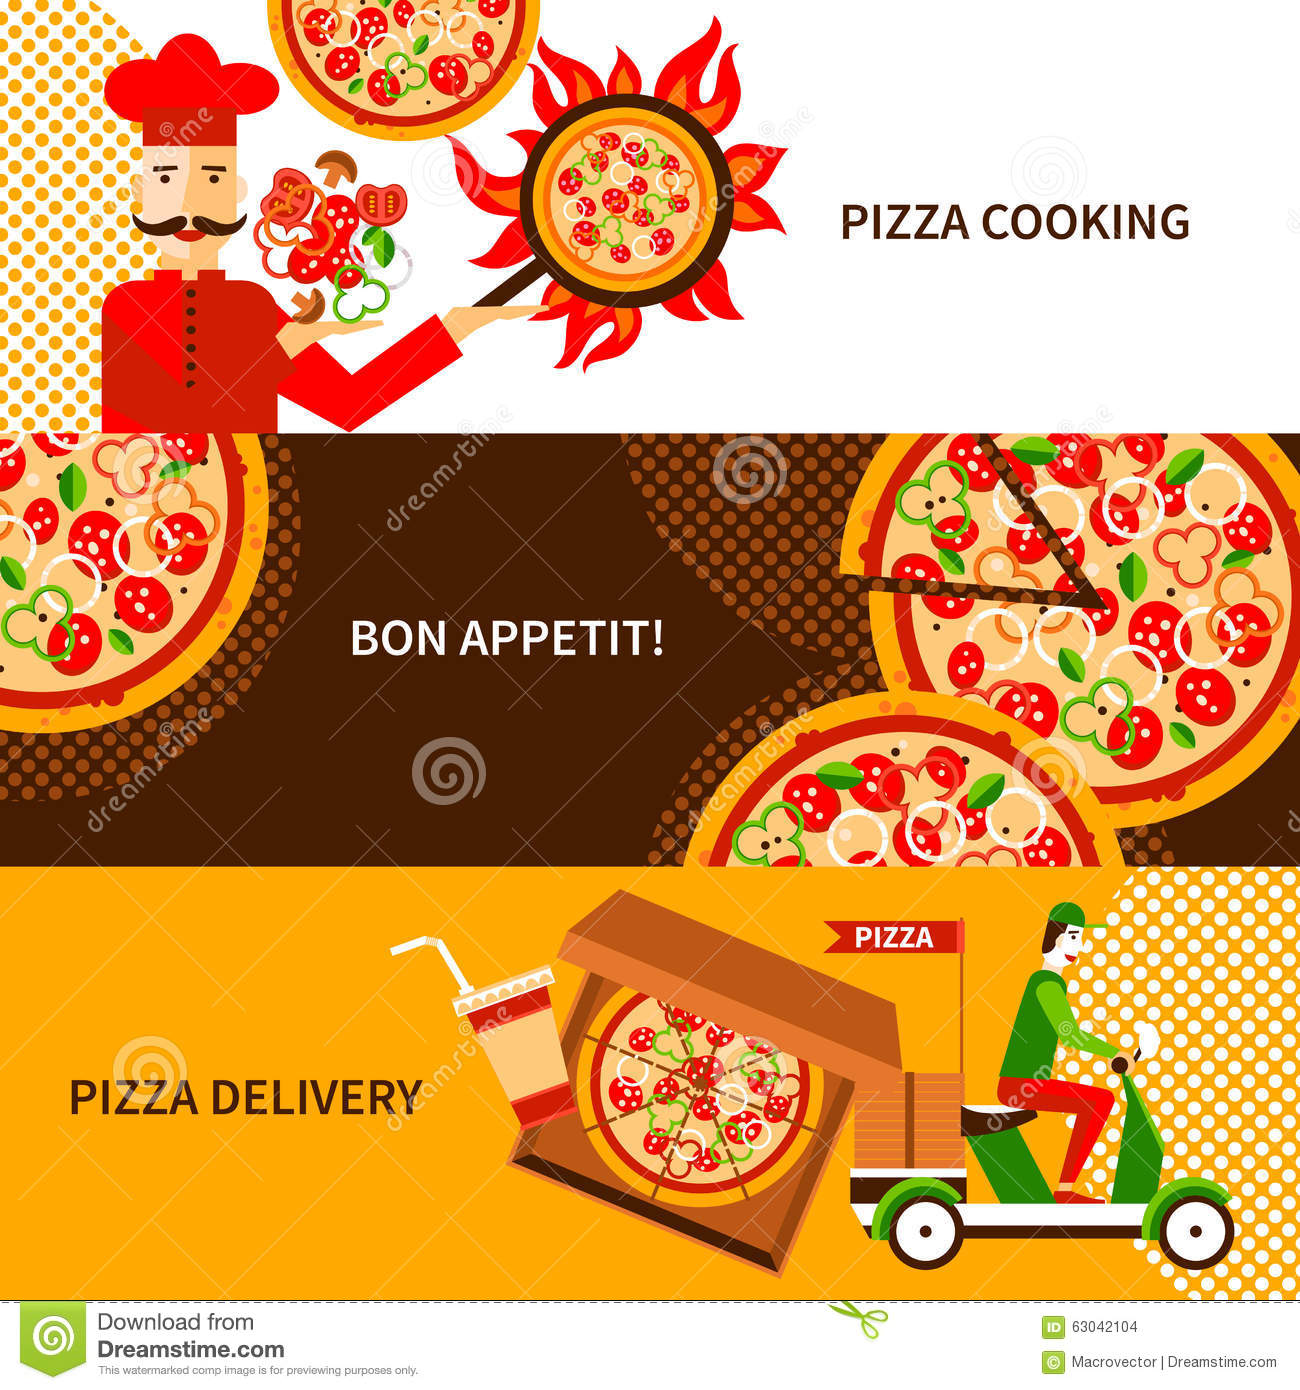 270c71c939d8 Online and phone orders italian pizza delivery service 3 flat horizontal  banners poster abstract isolated vector illustration